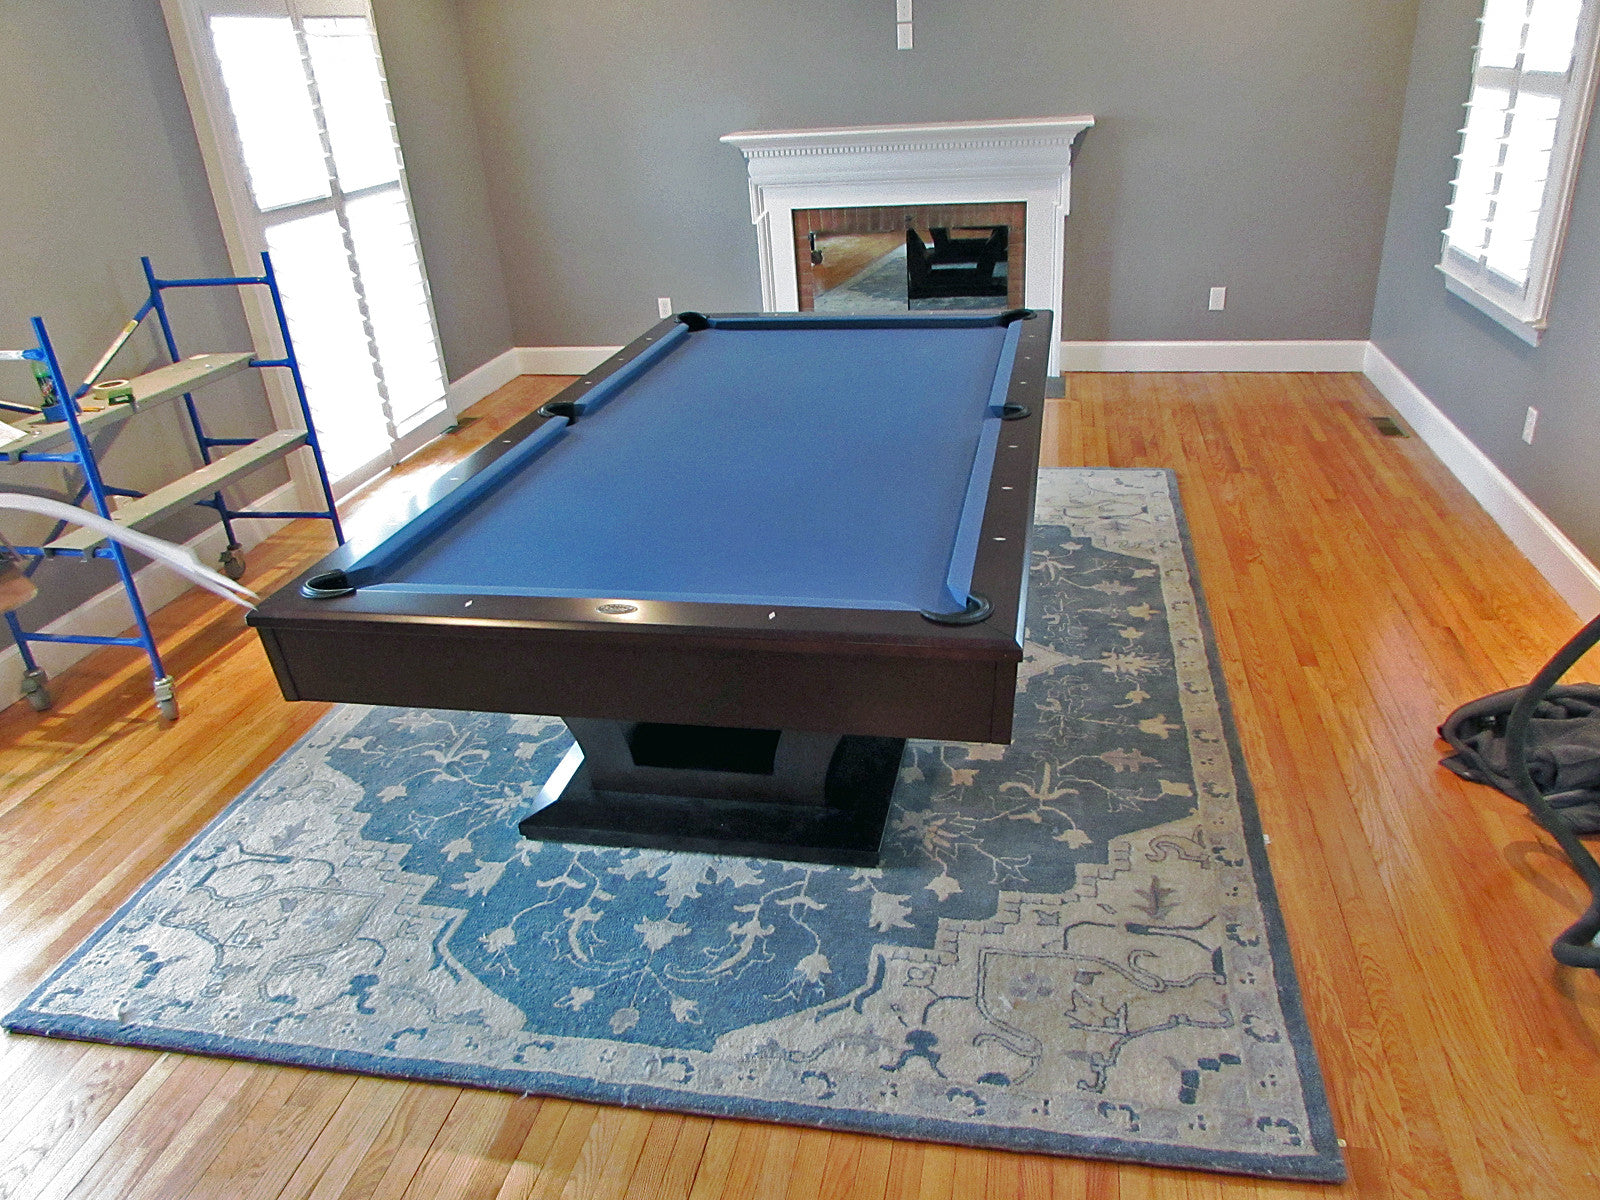 Olhausen Alexandria Pool Table installed in Marriotsville Maryland